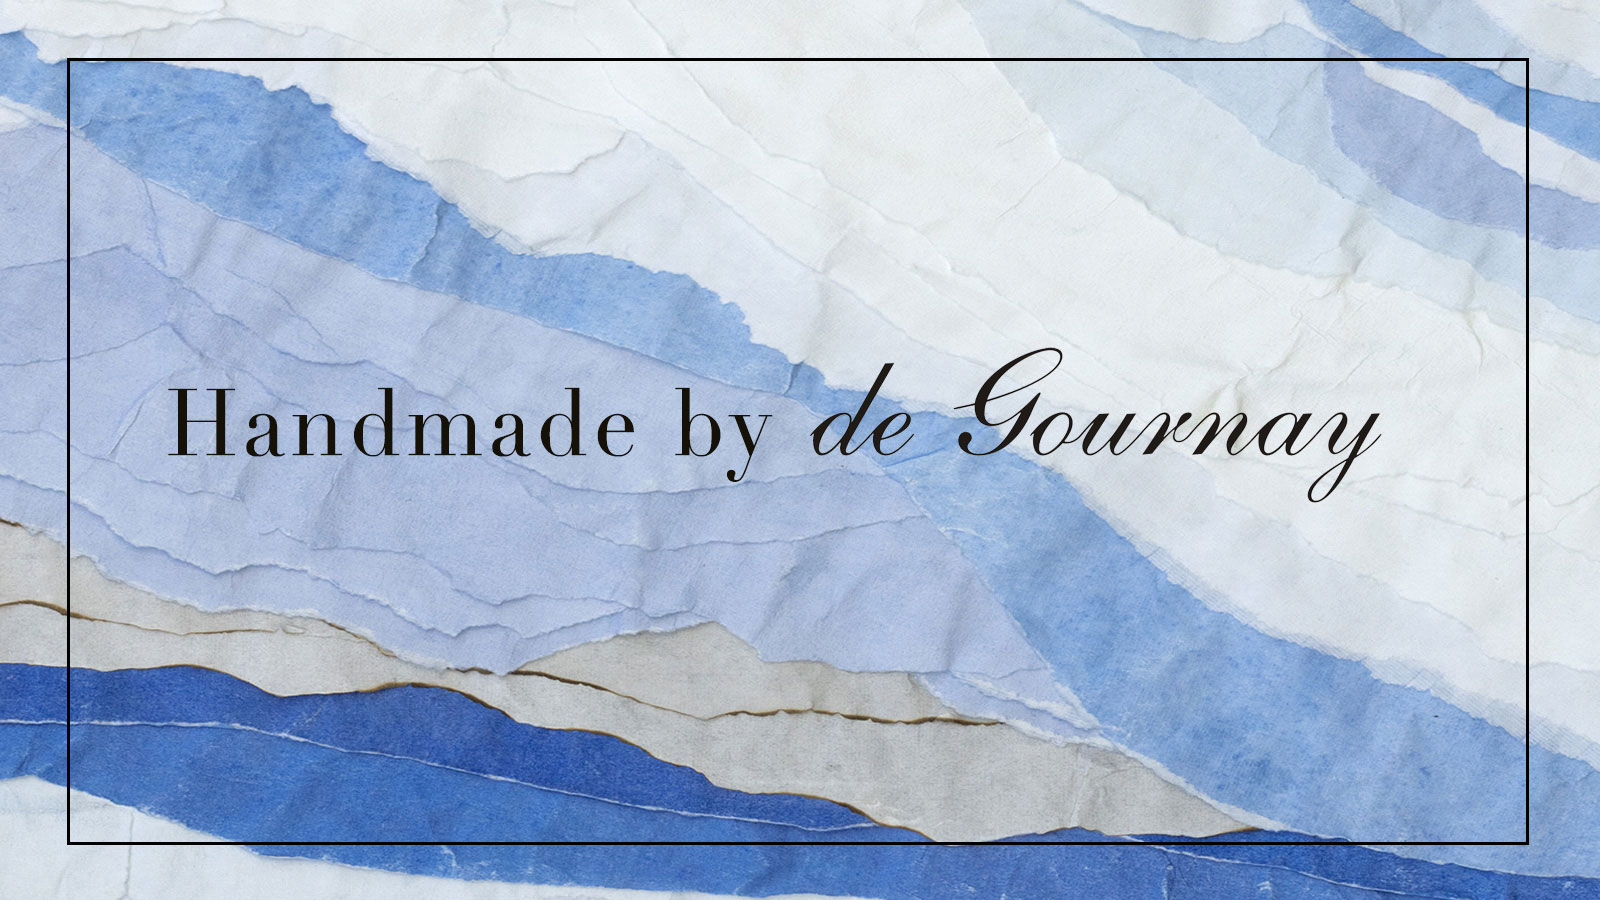 Handmade Papers - Handmade by de Gournay